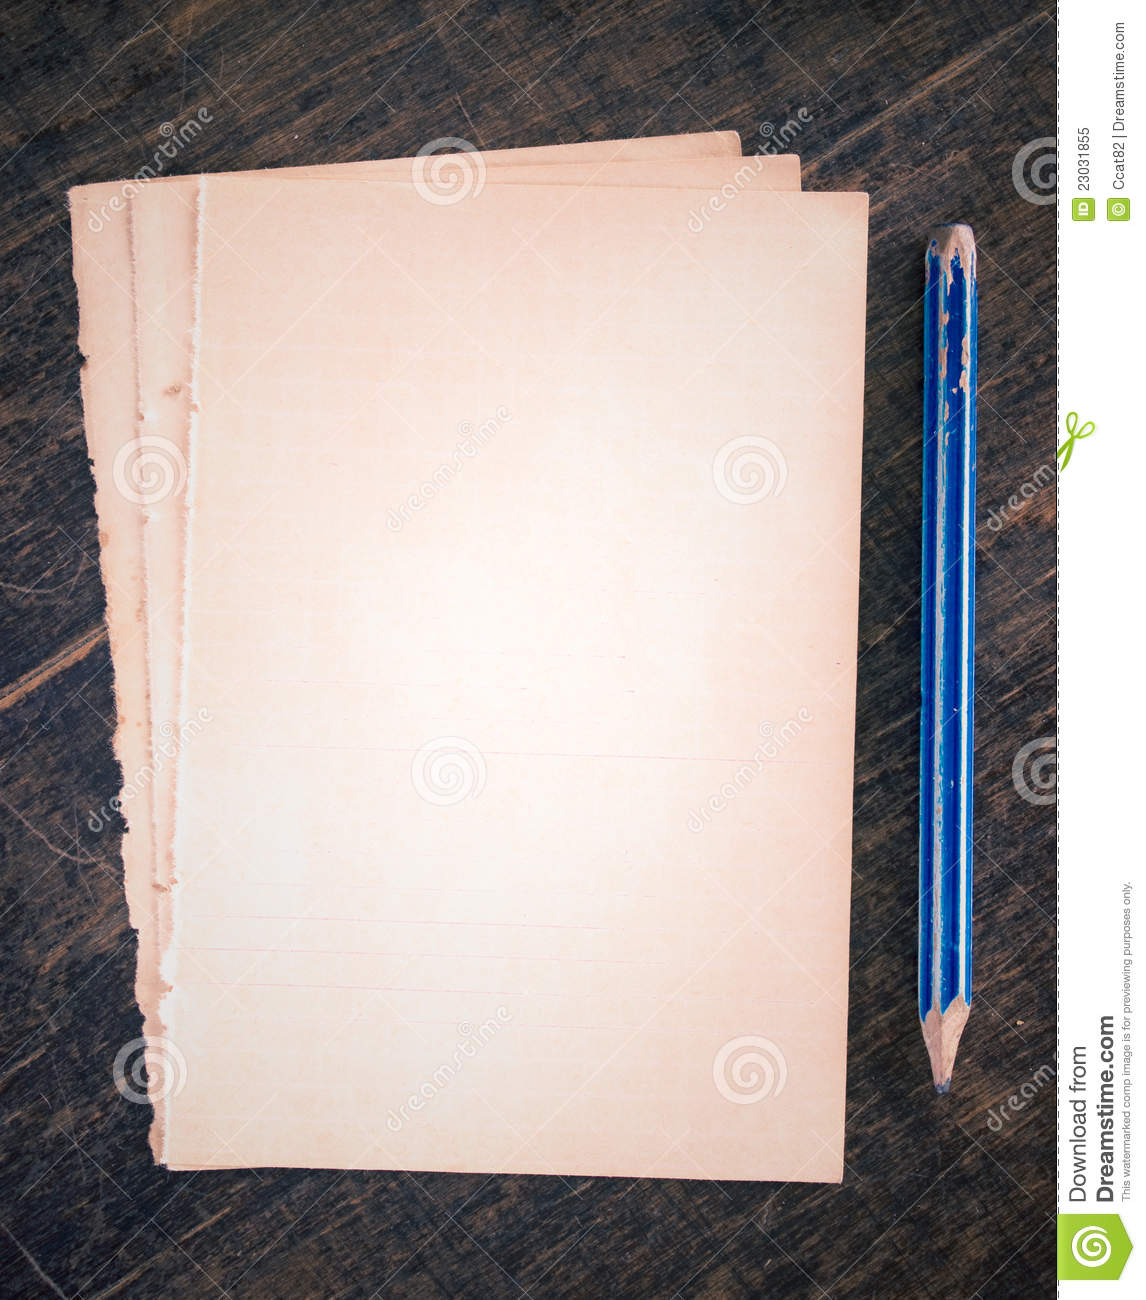 old paper cards and pencil stock image image of backdrop